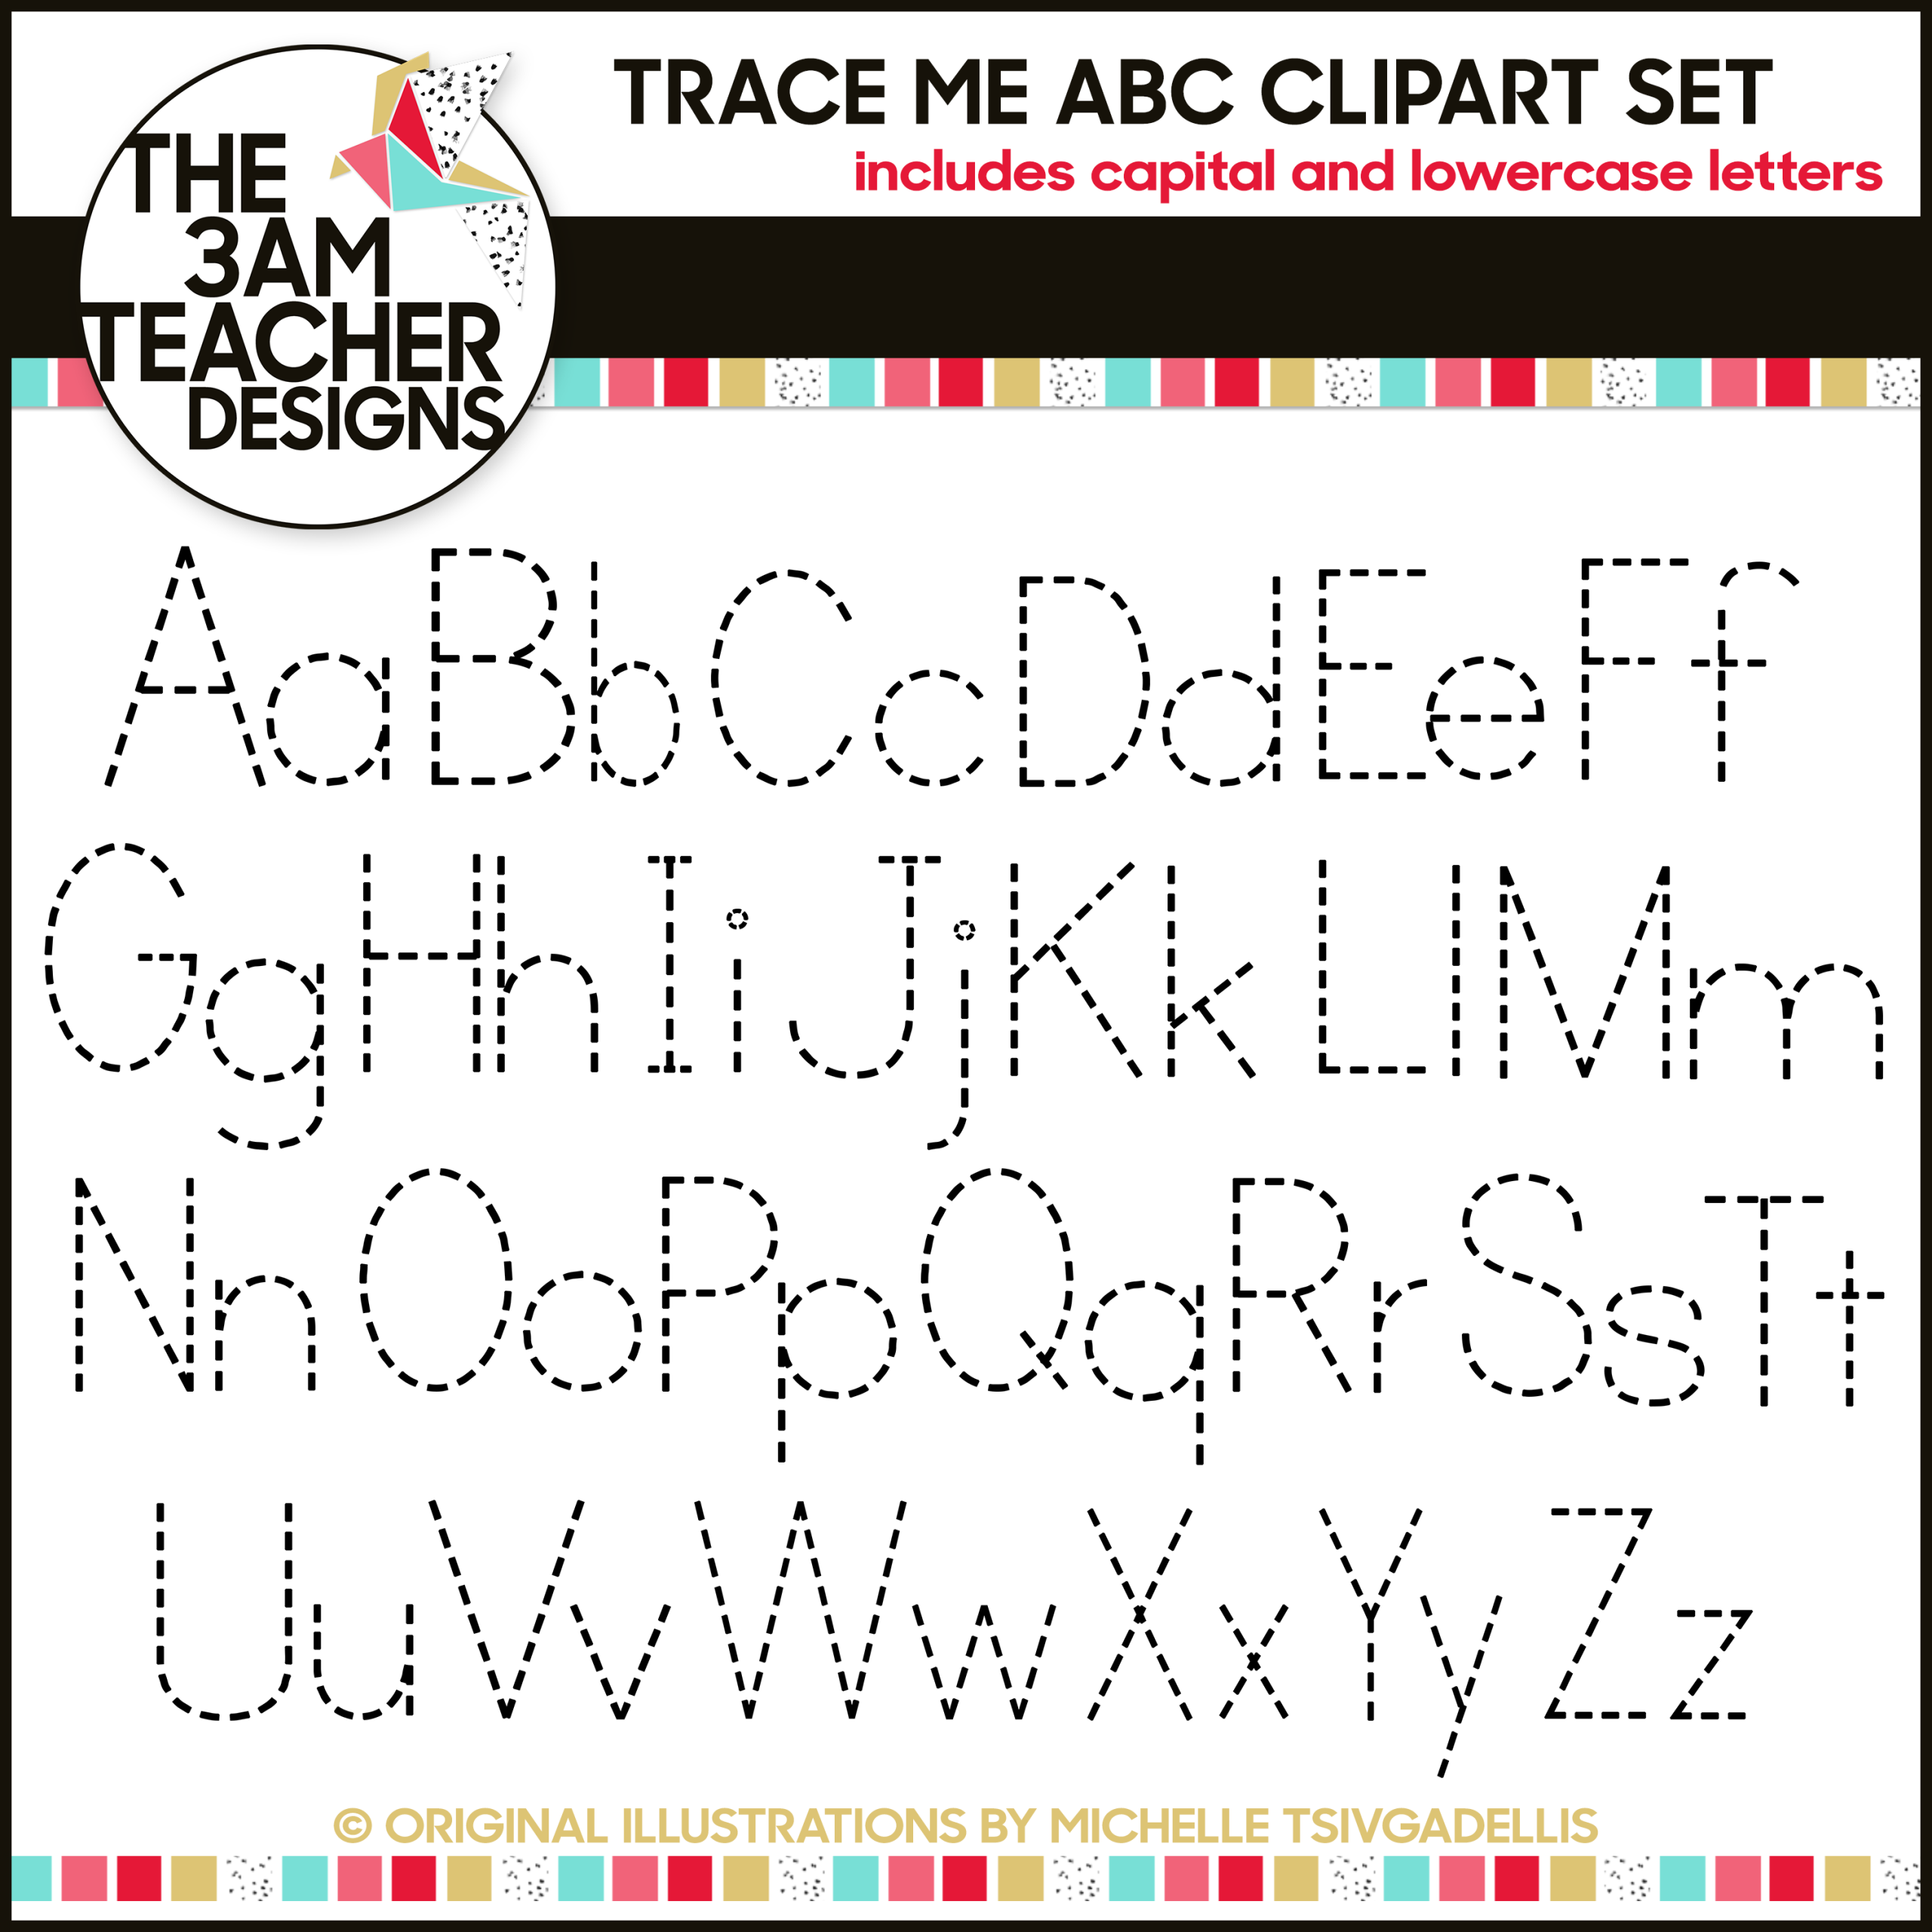 Worksheets Alphabet Tracing A  Z trace me alphabet letters a z